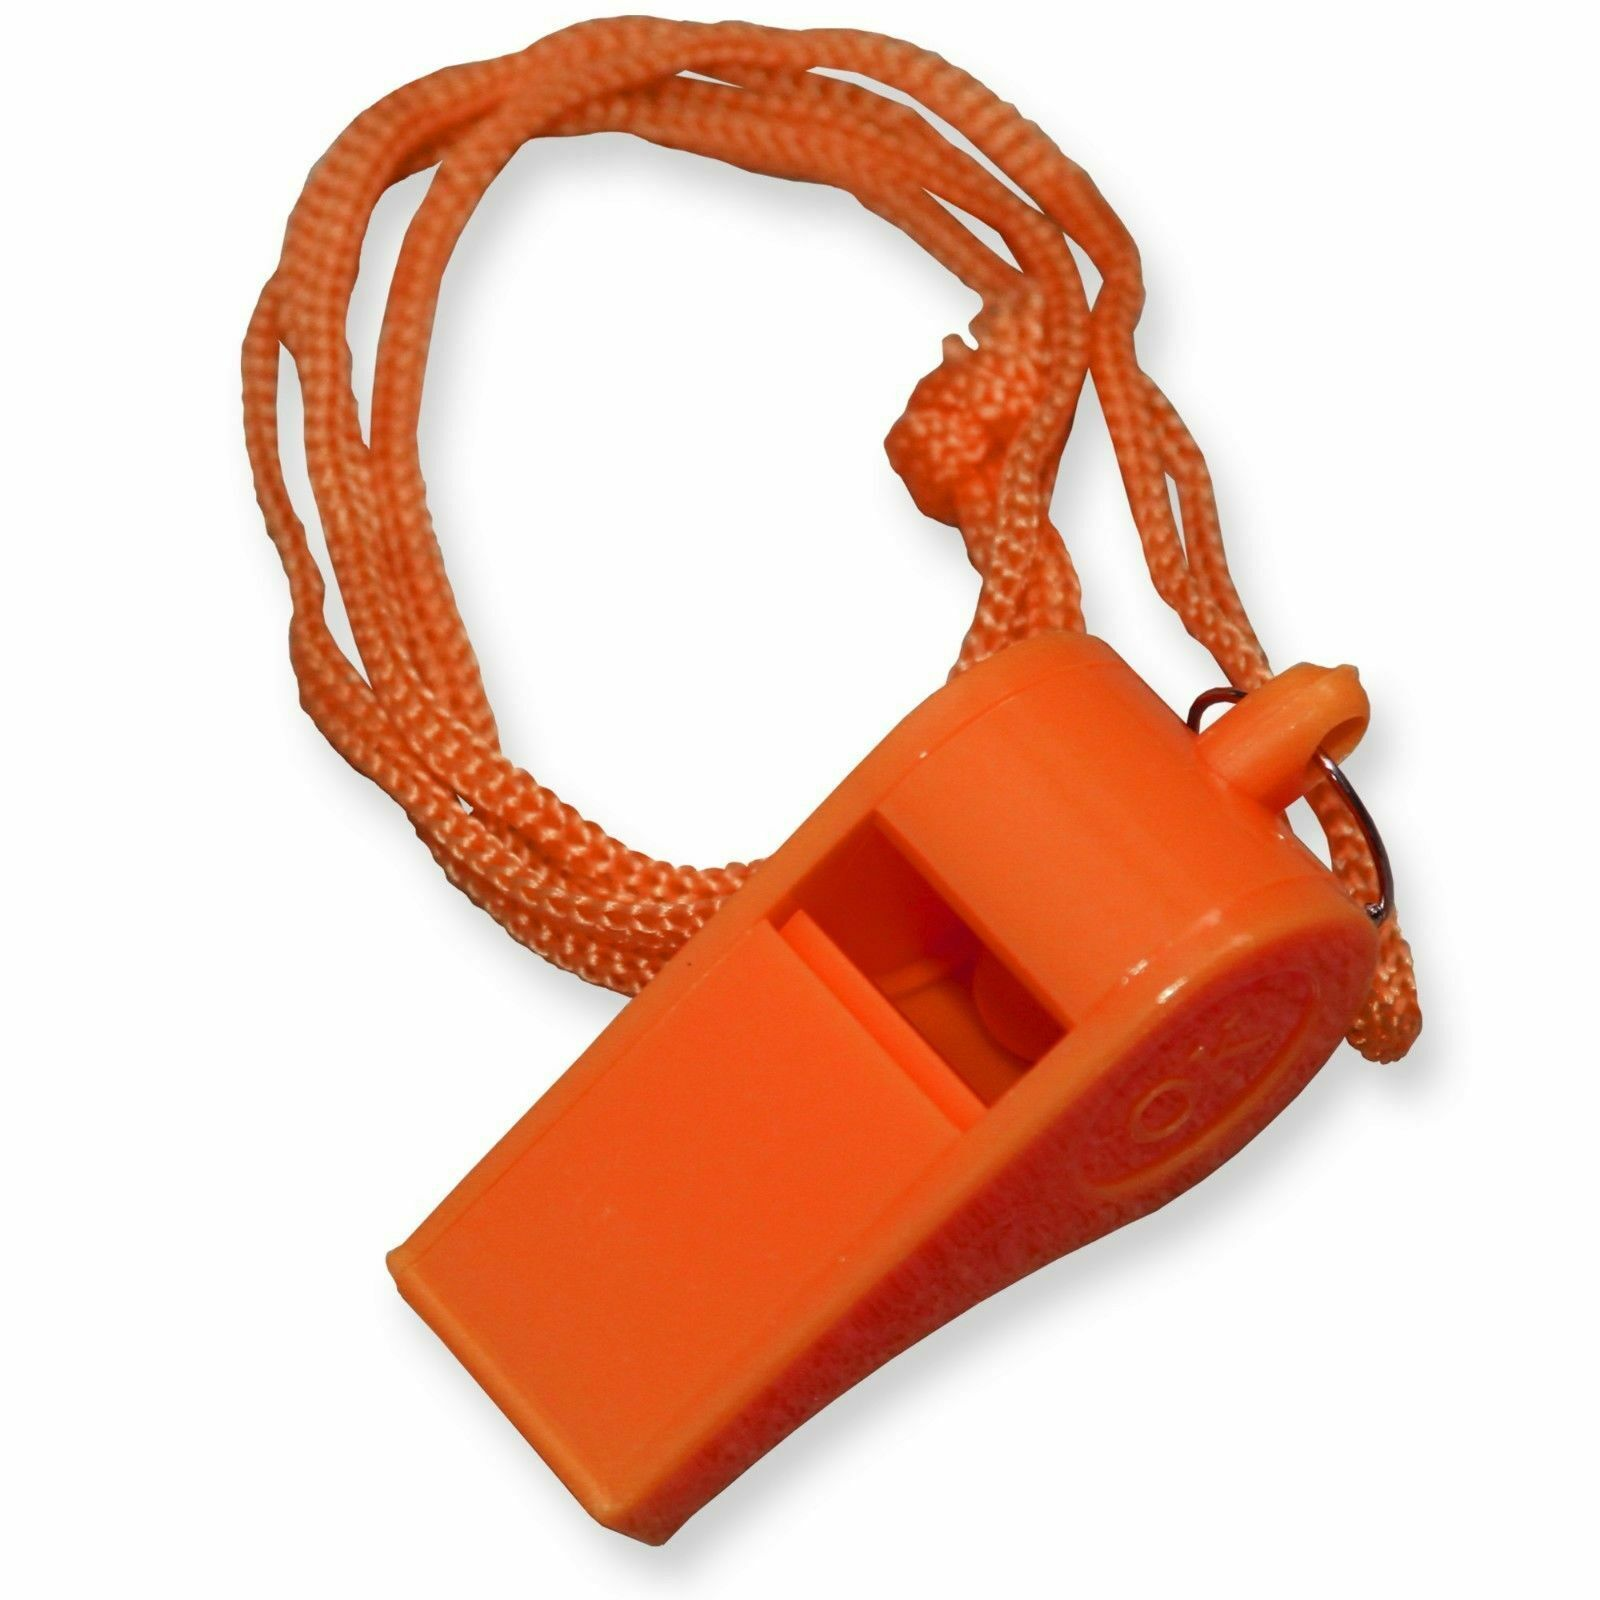 Lot of 24 Plastic Whistle /& Lanyard Emergency Survival  High Quality/_wk